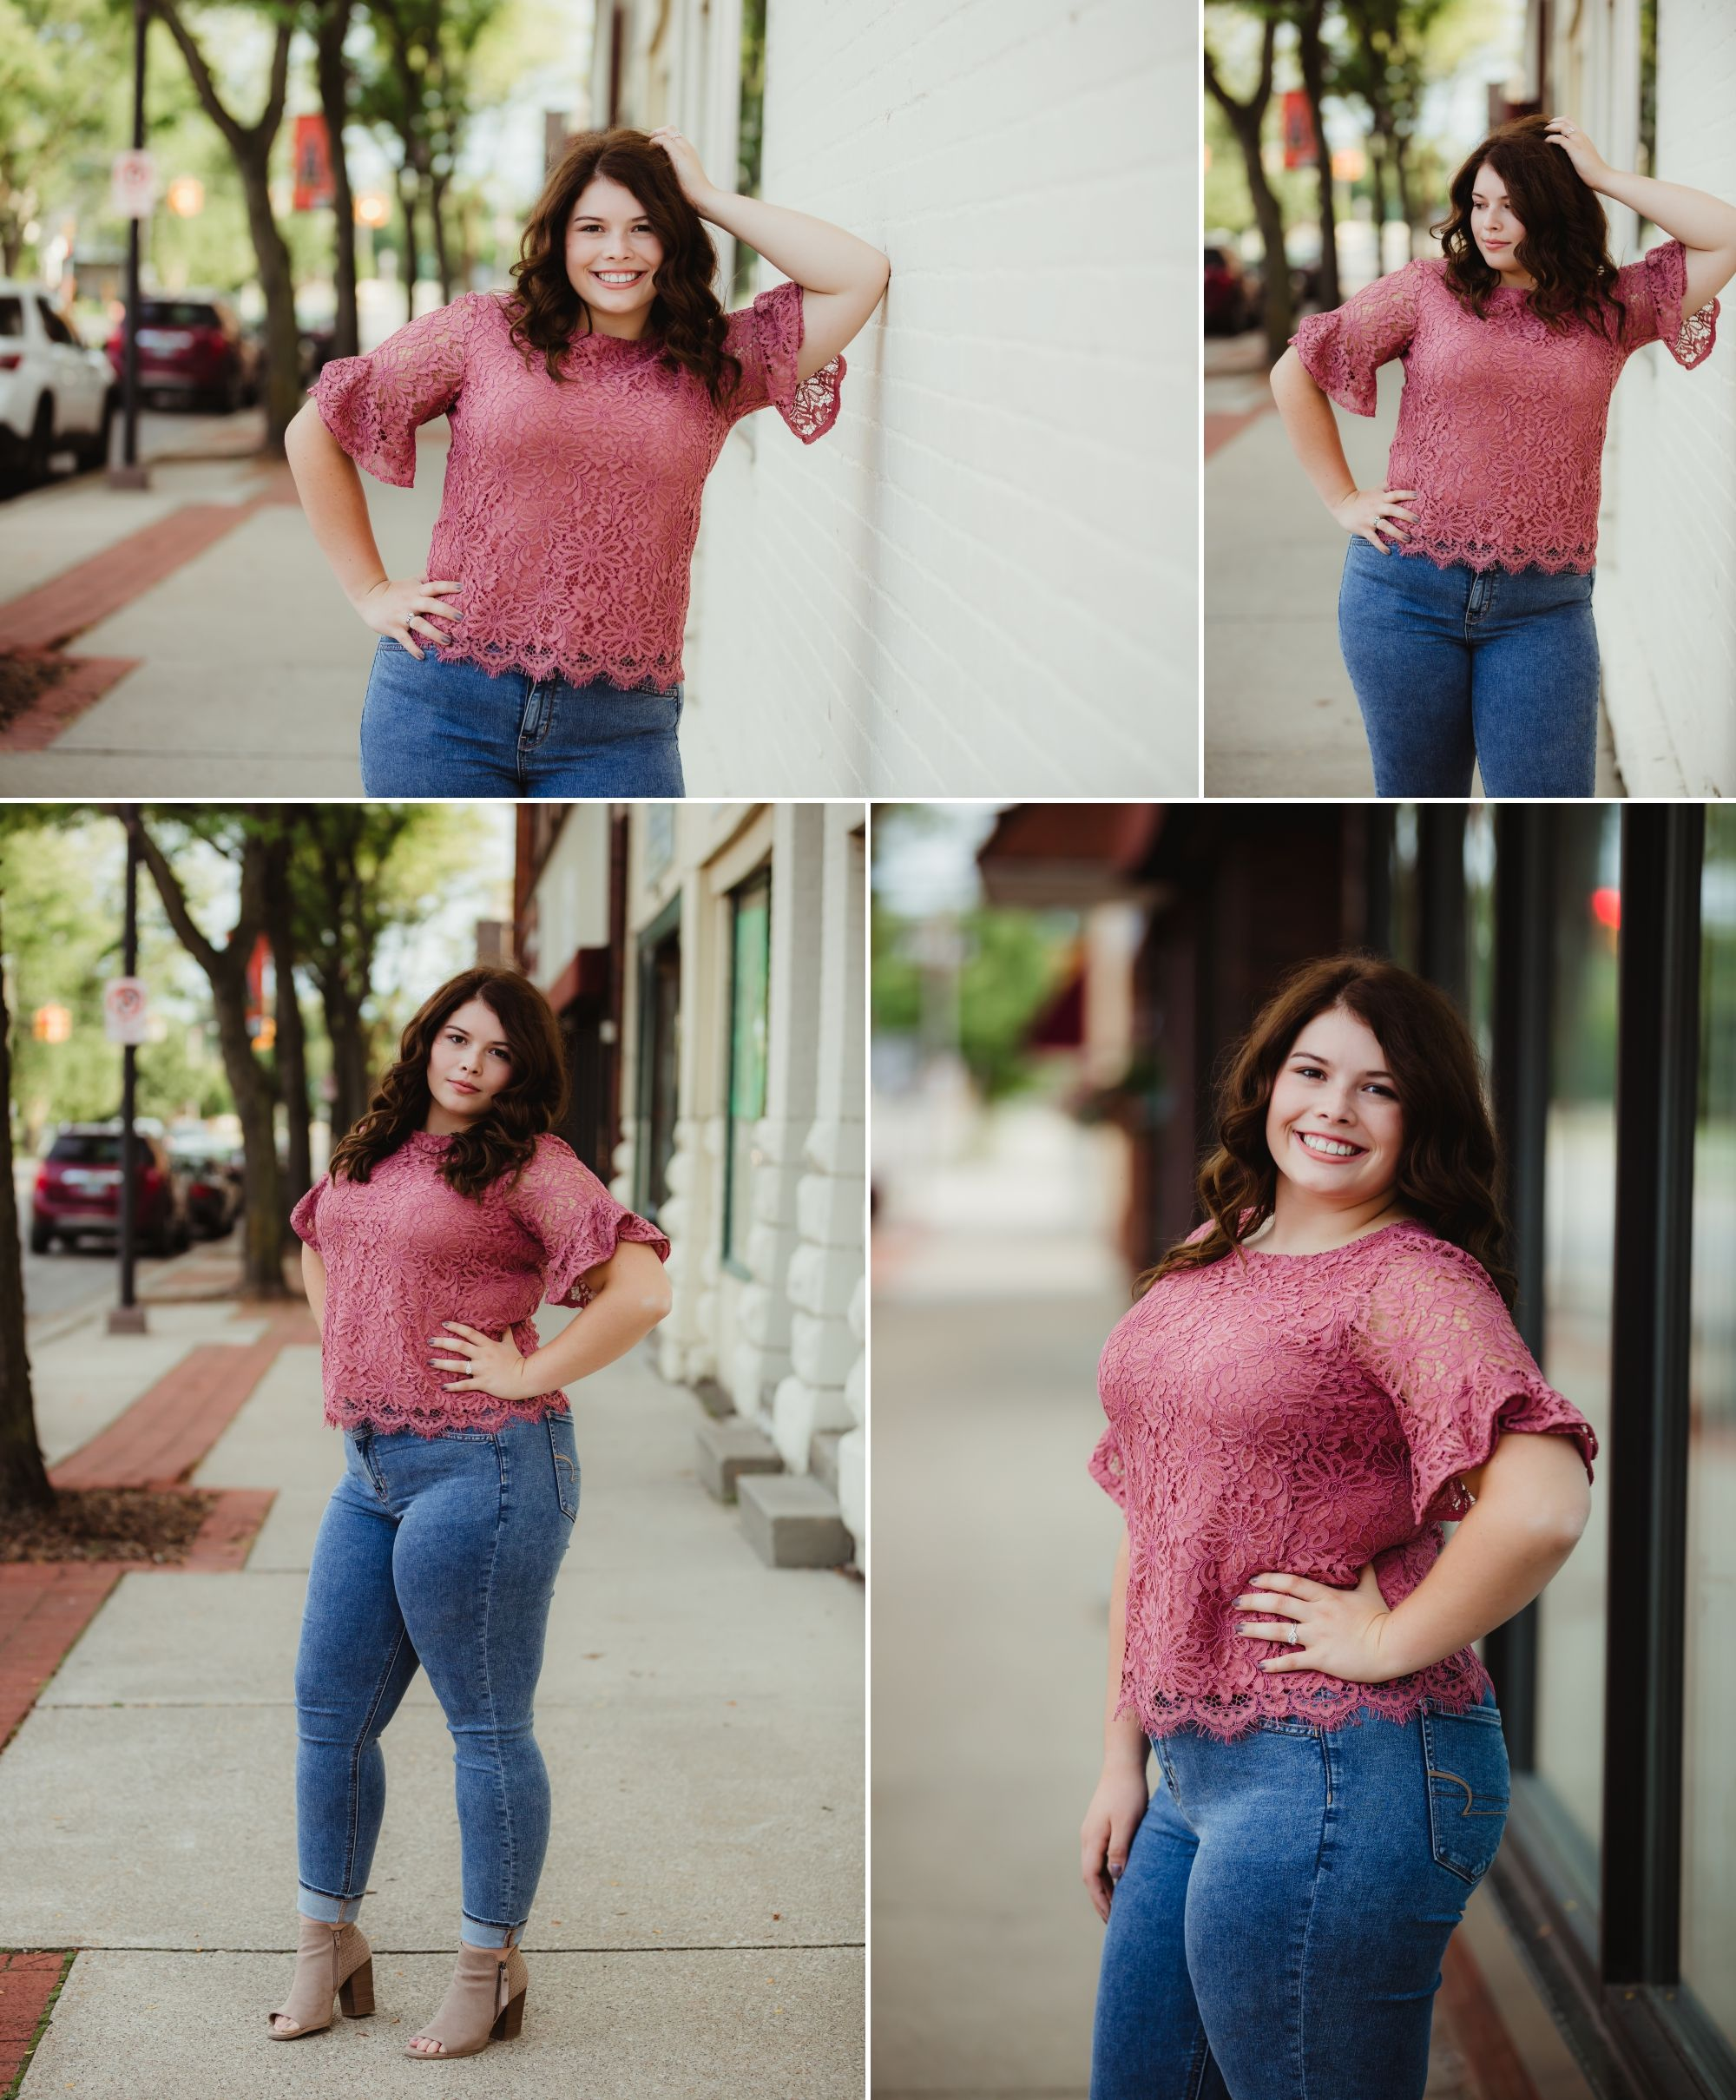 Downtown photos of a high school senior girl with brown hair wearing jeans and a pink shirt.